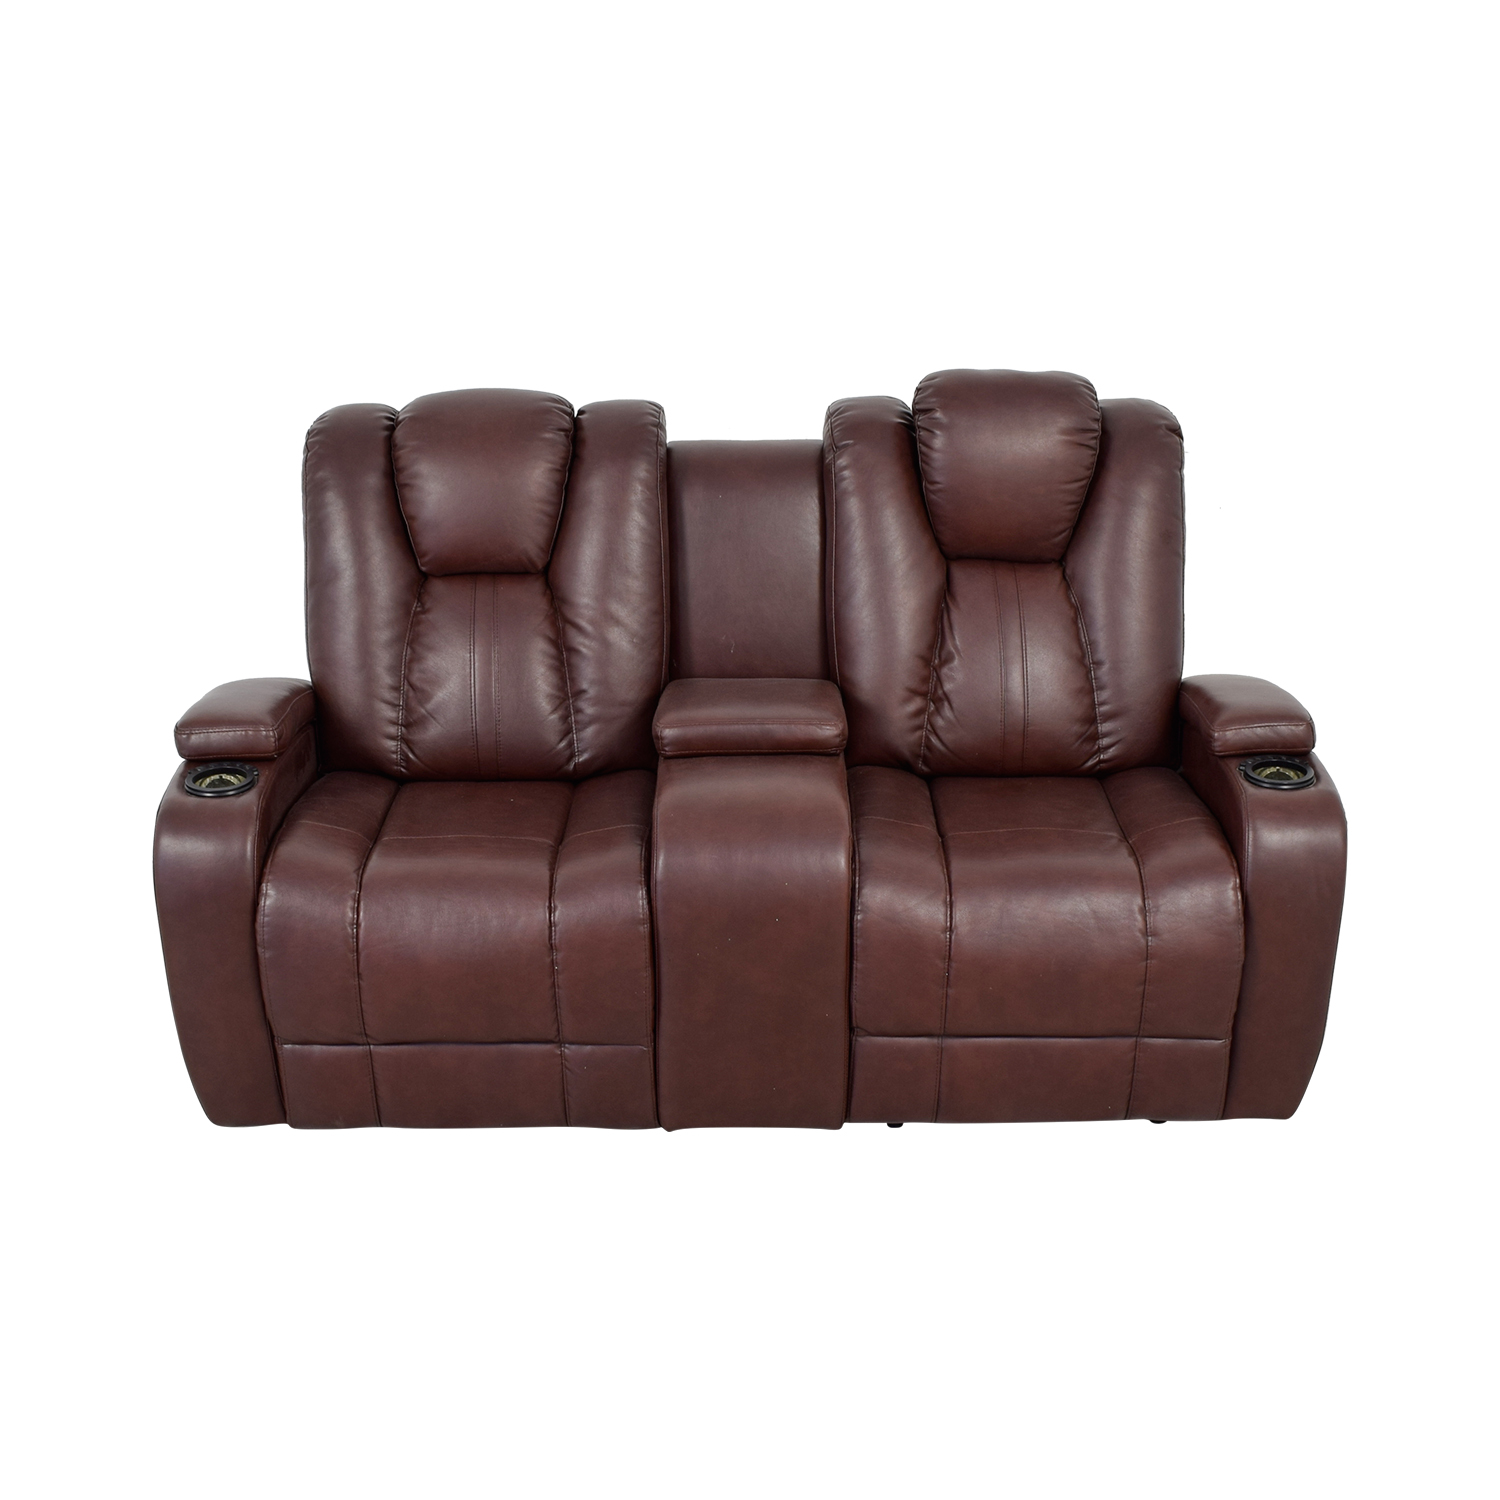 Bob's Furniture Bob's Furniture Brown Power Dual Reclining Console Loveseat for sale